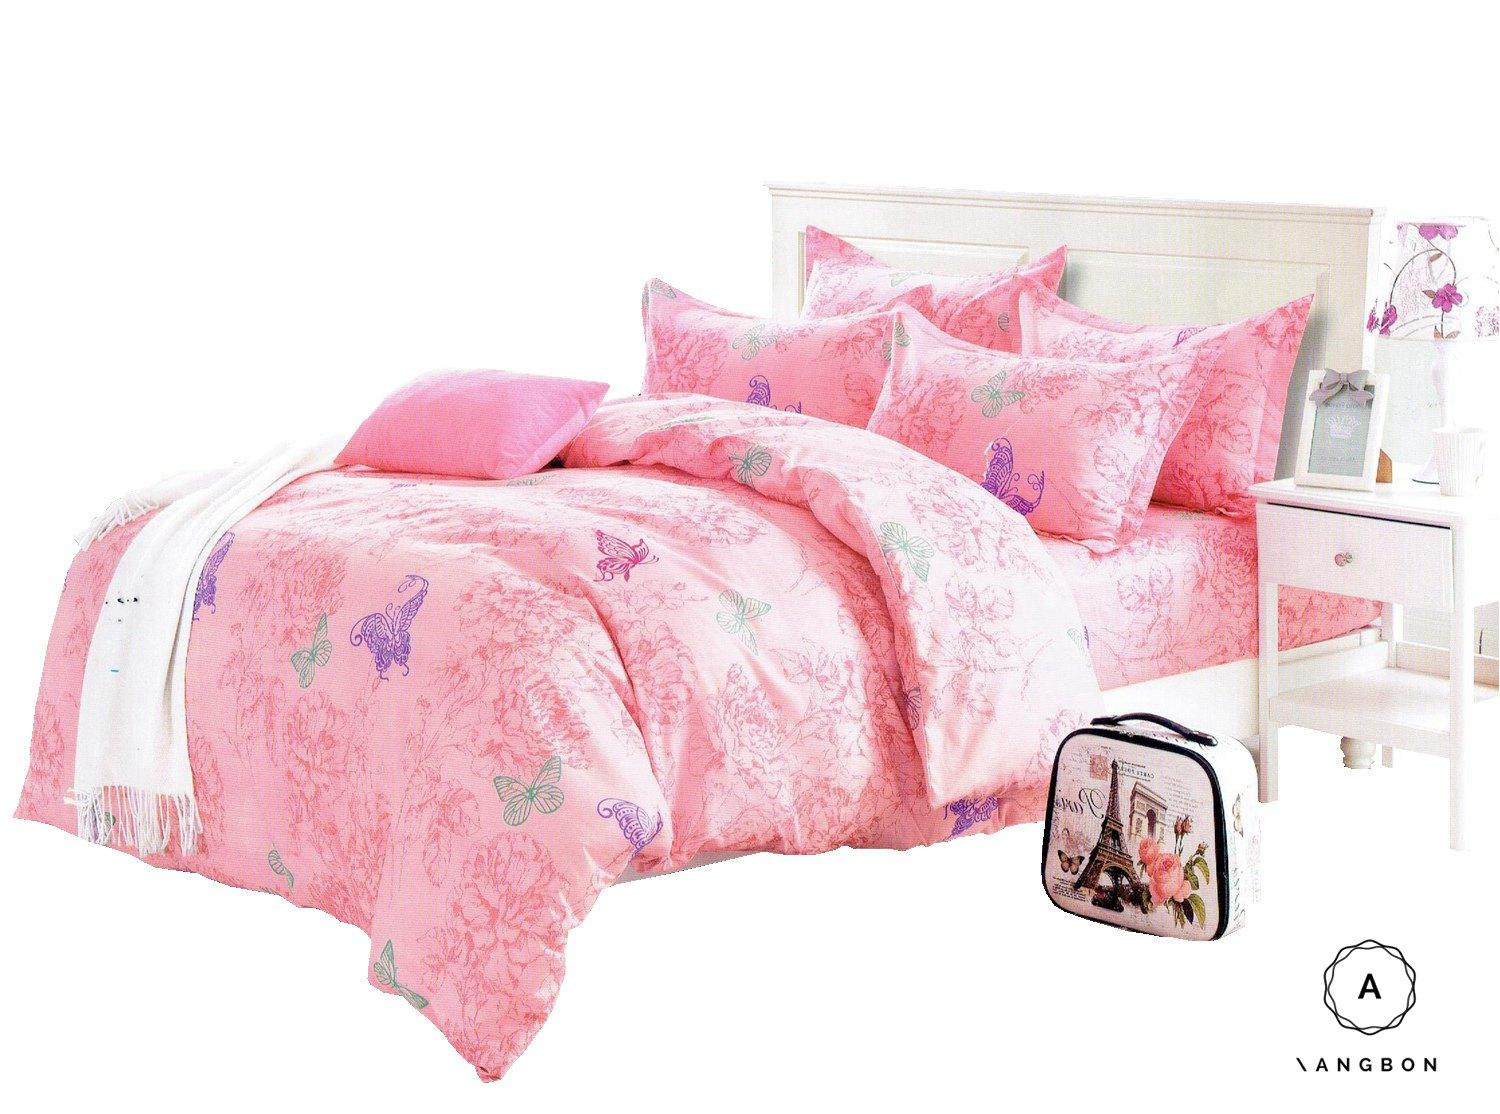 Bed Sheet For Sale Covers Prices Brands Review In Apparatus Folding Fitted Sheets Diagram And Image Angbon 3in1 Queen Size Bedding Set 6075 78 Poly Cotton